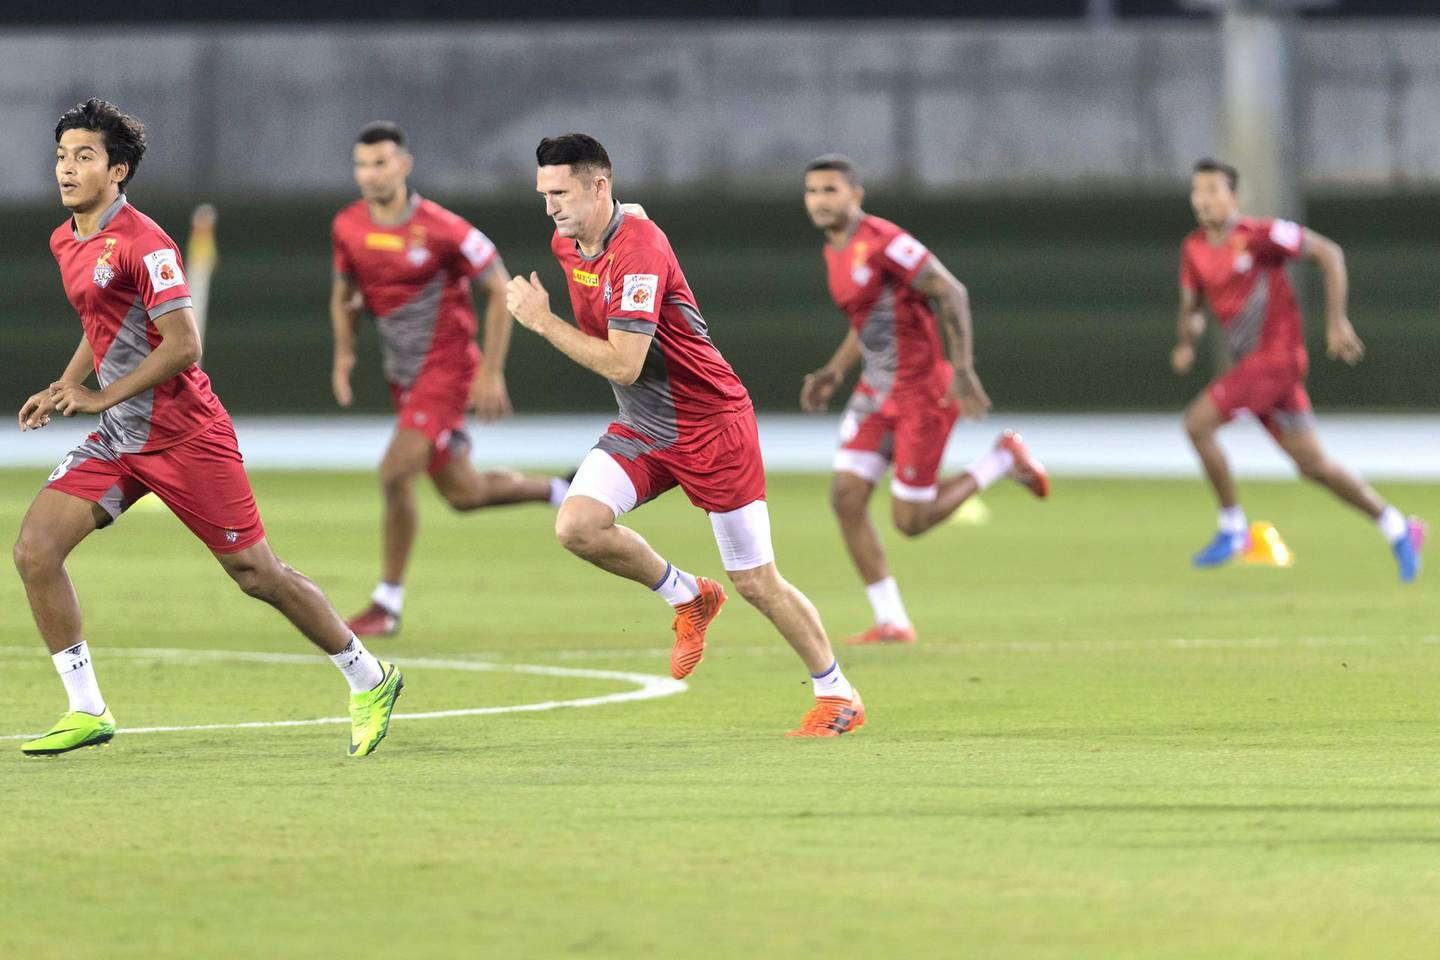 Dubai, United Arab Emirates, November 2, 2017:     Robbie Keane takes trains with fellow members of the Indian football club ATK during a training session at the Nad Al Sheba Sports Complex in the Nad Al Sheba area of Dubai on November 2, 2017. Christopher Pike / The NationalReporter: Paul RadleySection: Sport